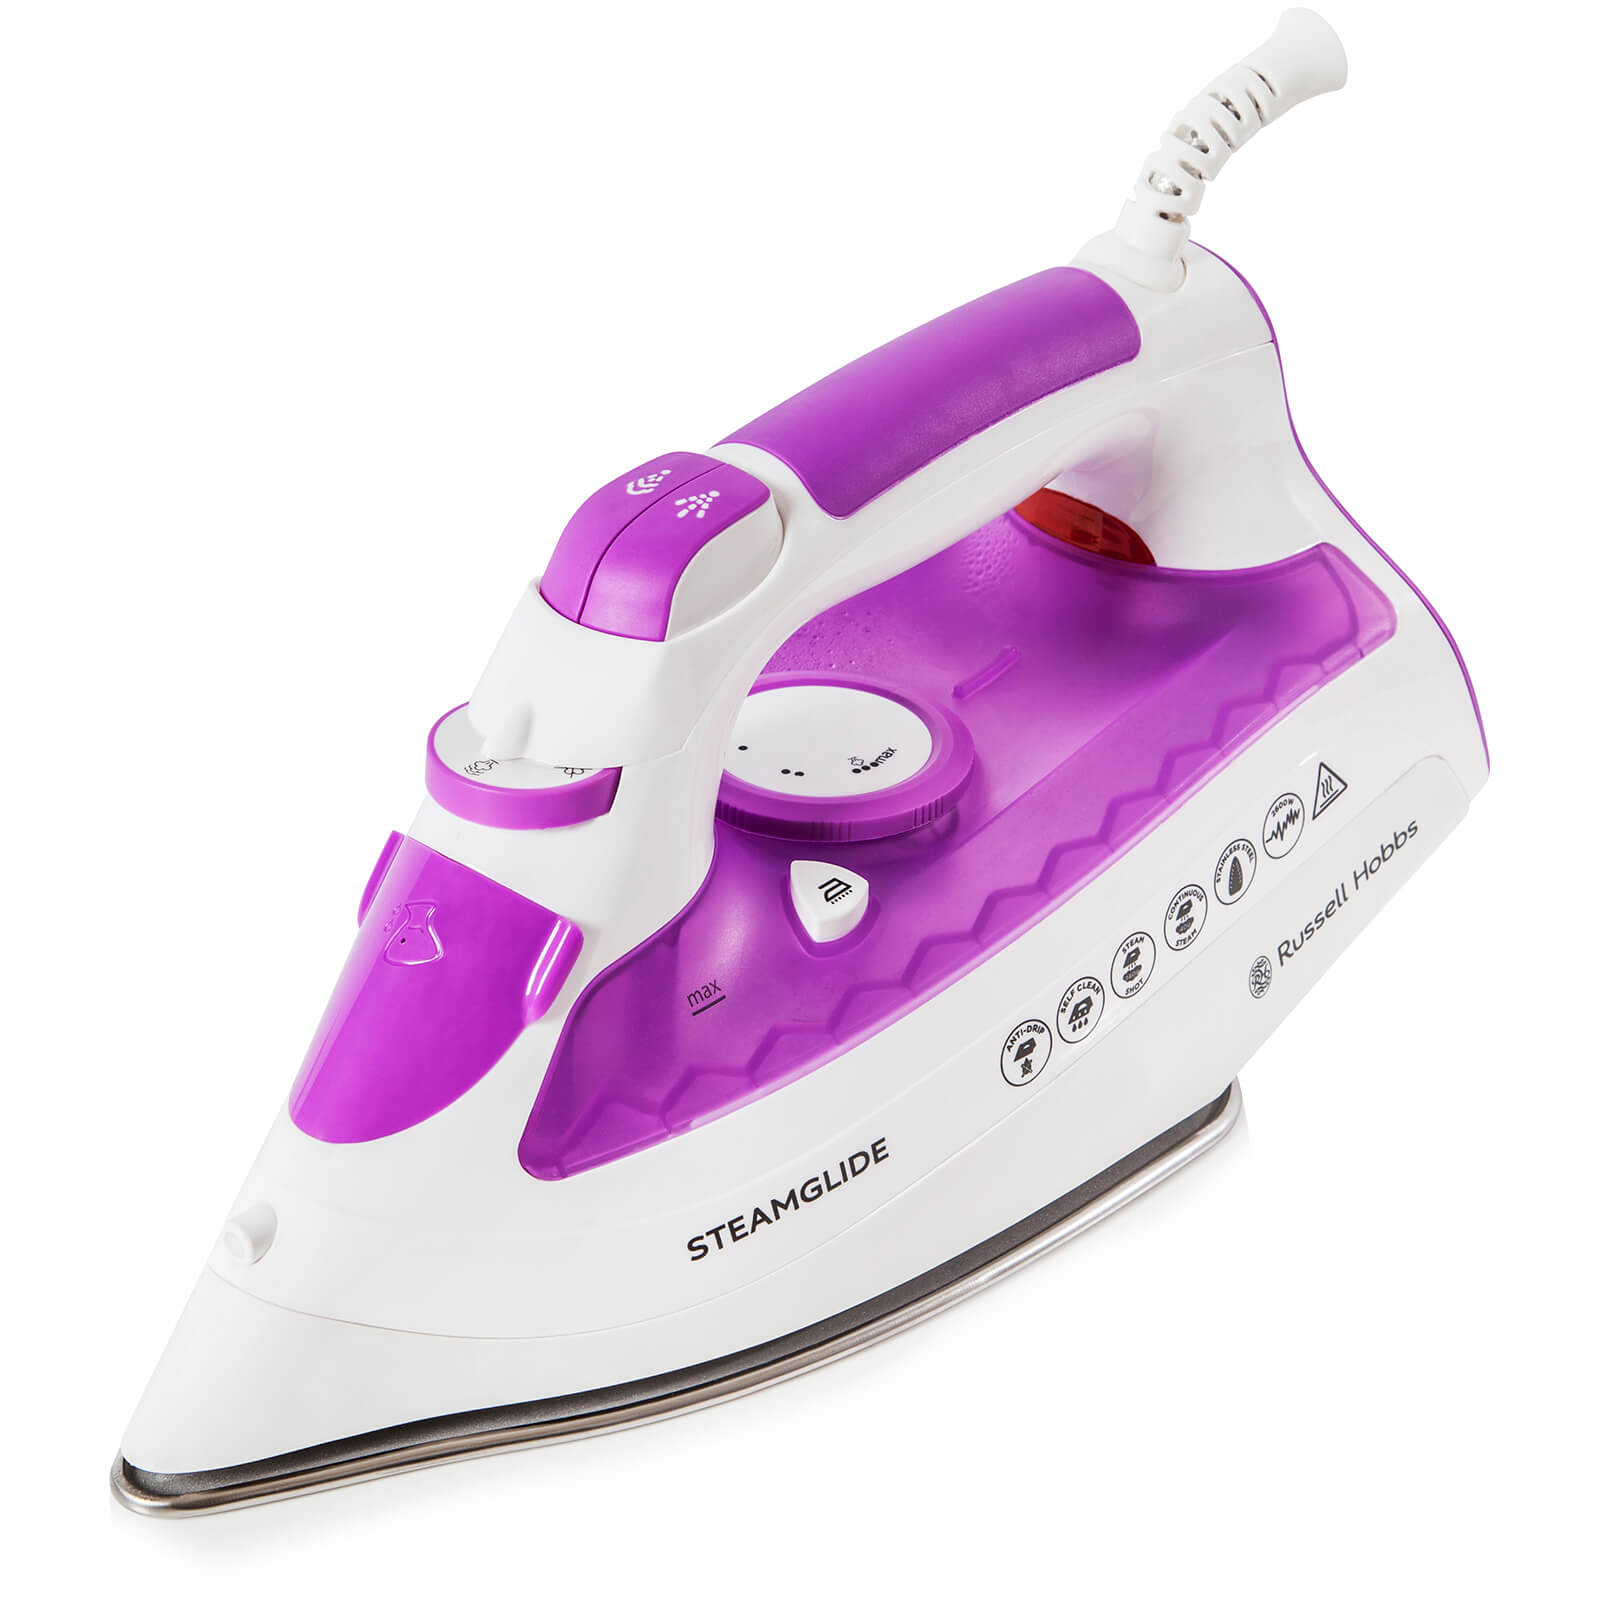 Russell Hobbs 21360NO Steamglide Steam Iron - White